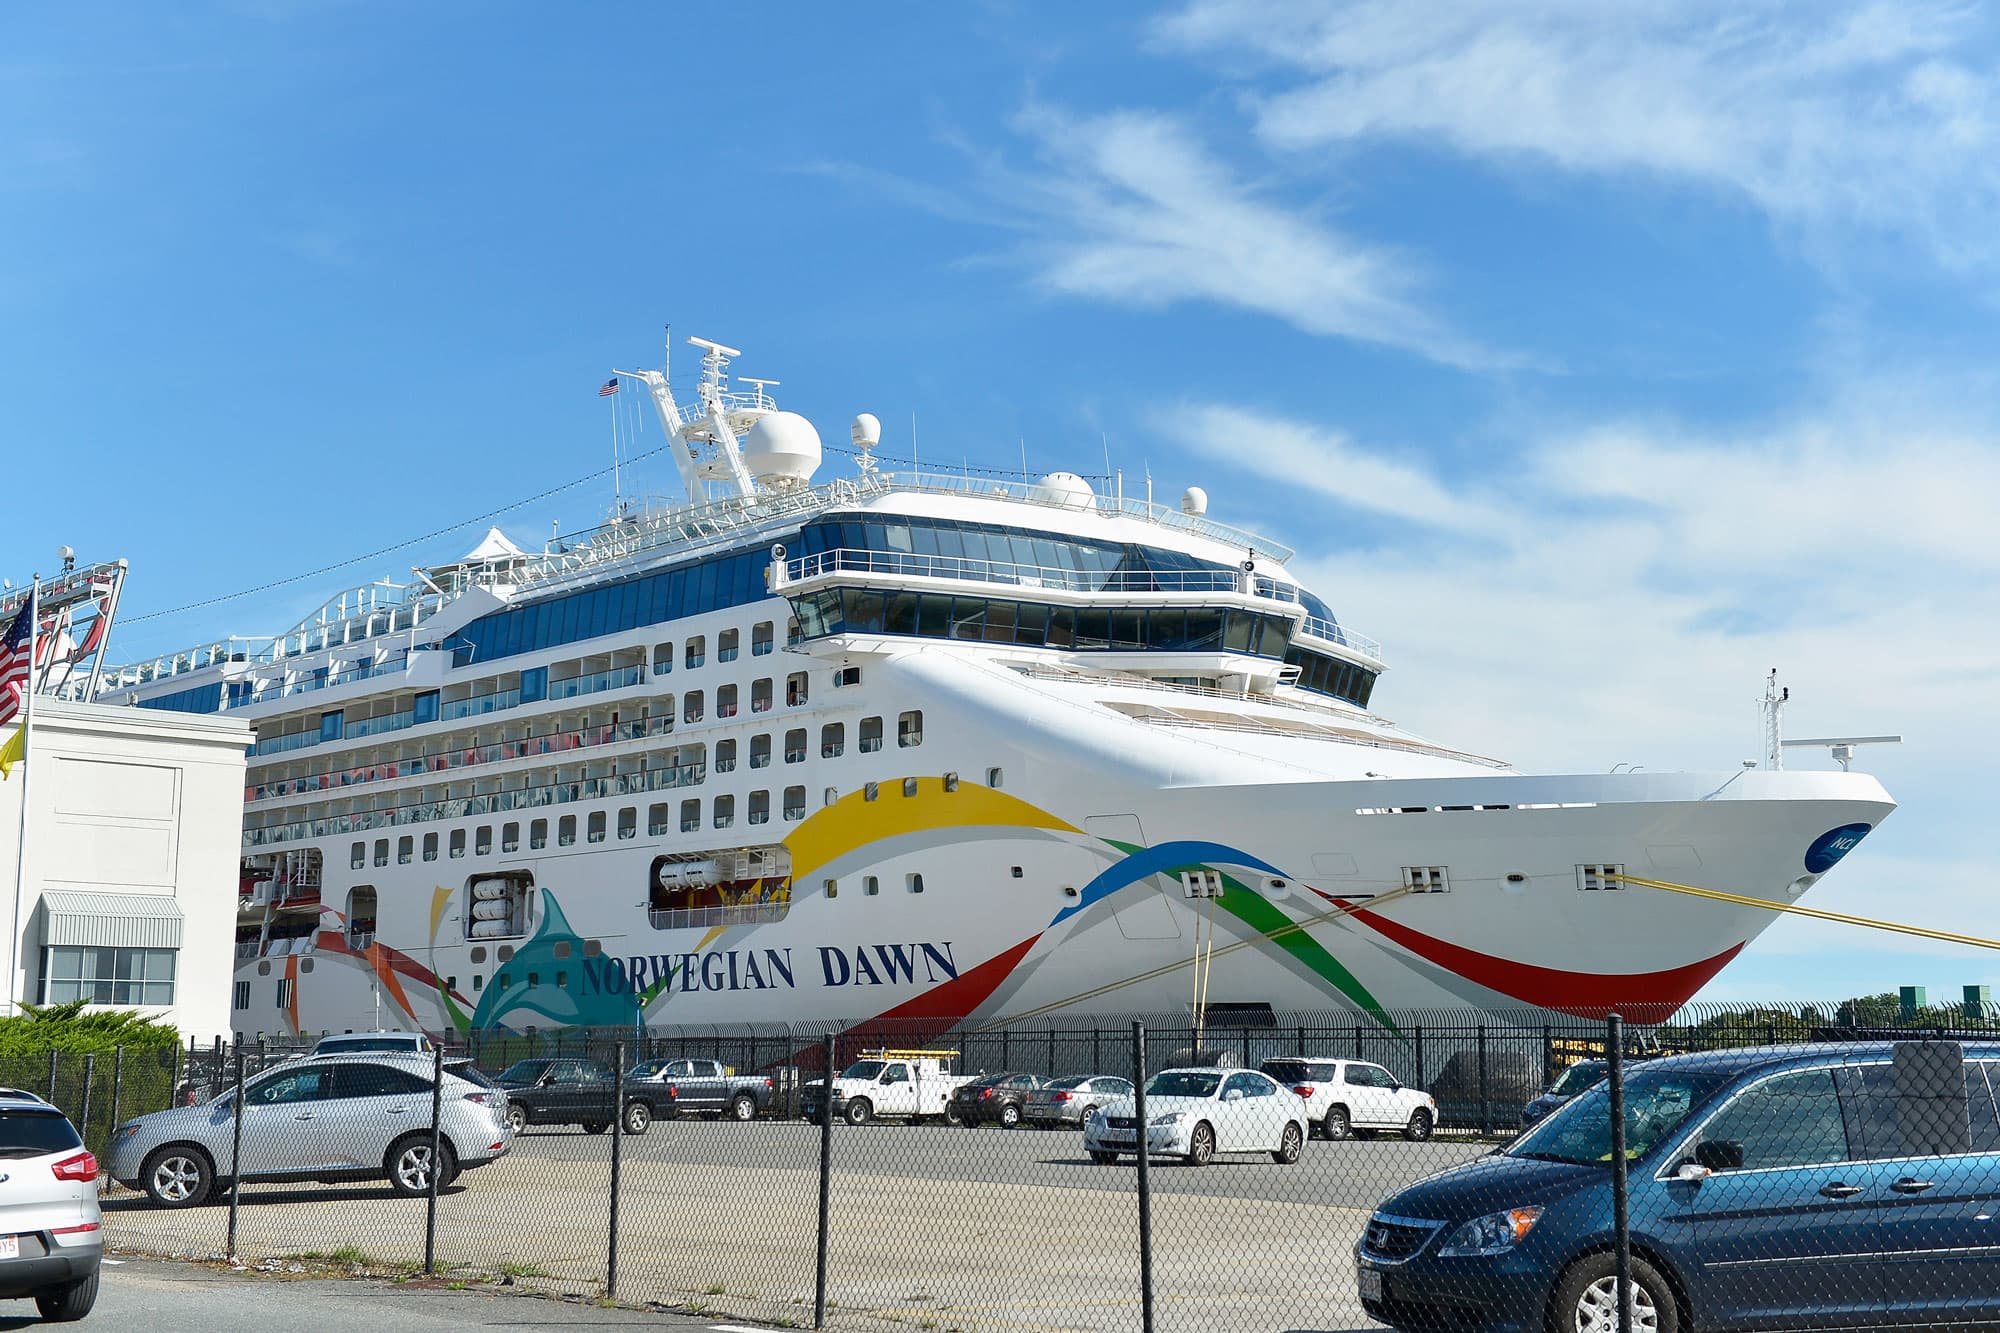 Norwegian Cruise Line can require Florida passengers to show proof of Covid vaccination, federal judge rules